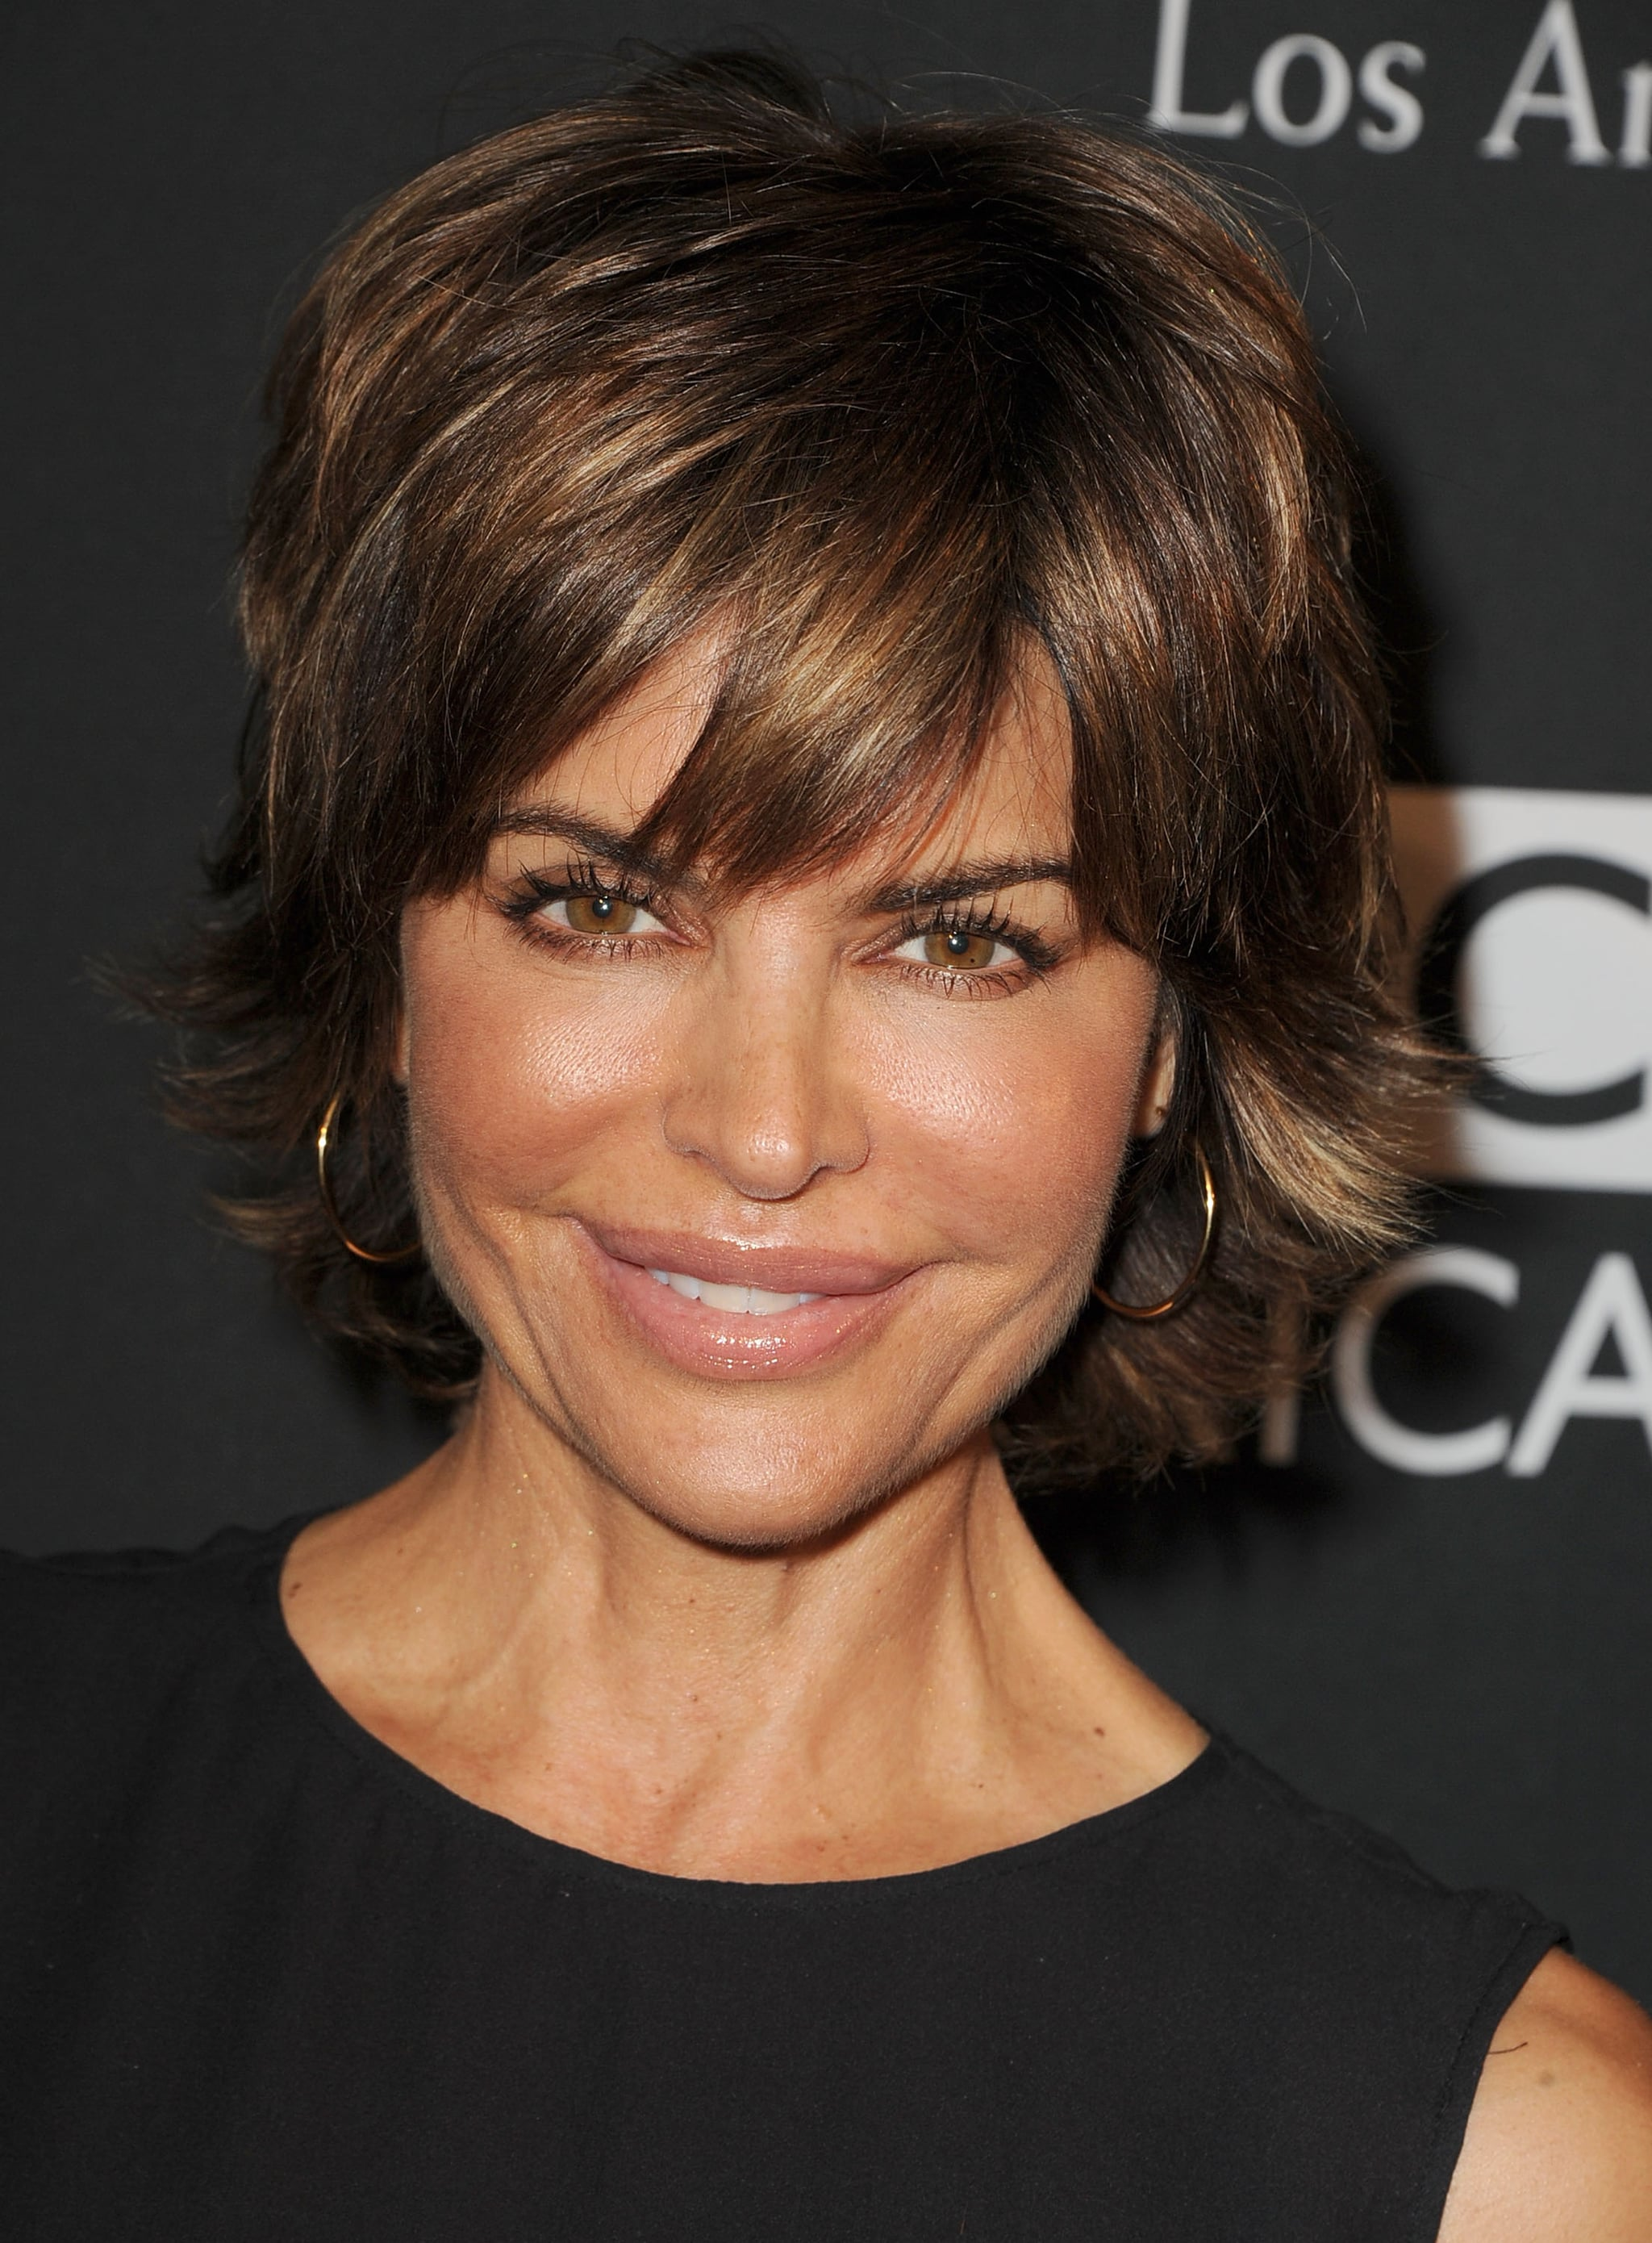 Lisa Rinna stuck to her signature look for the BAFTA LA TV Tea, but perhaps she'll liven up her look for the red carpet at the Emmys tonight.